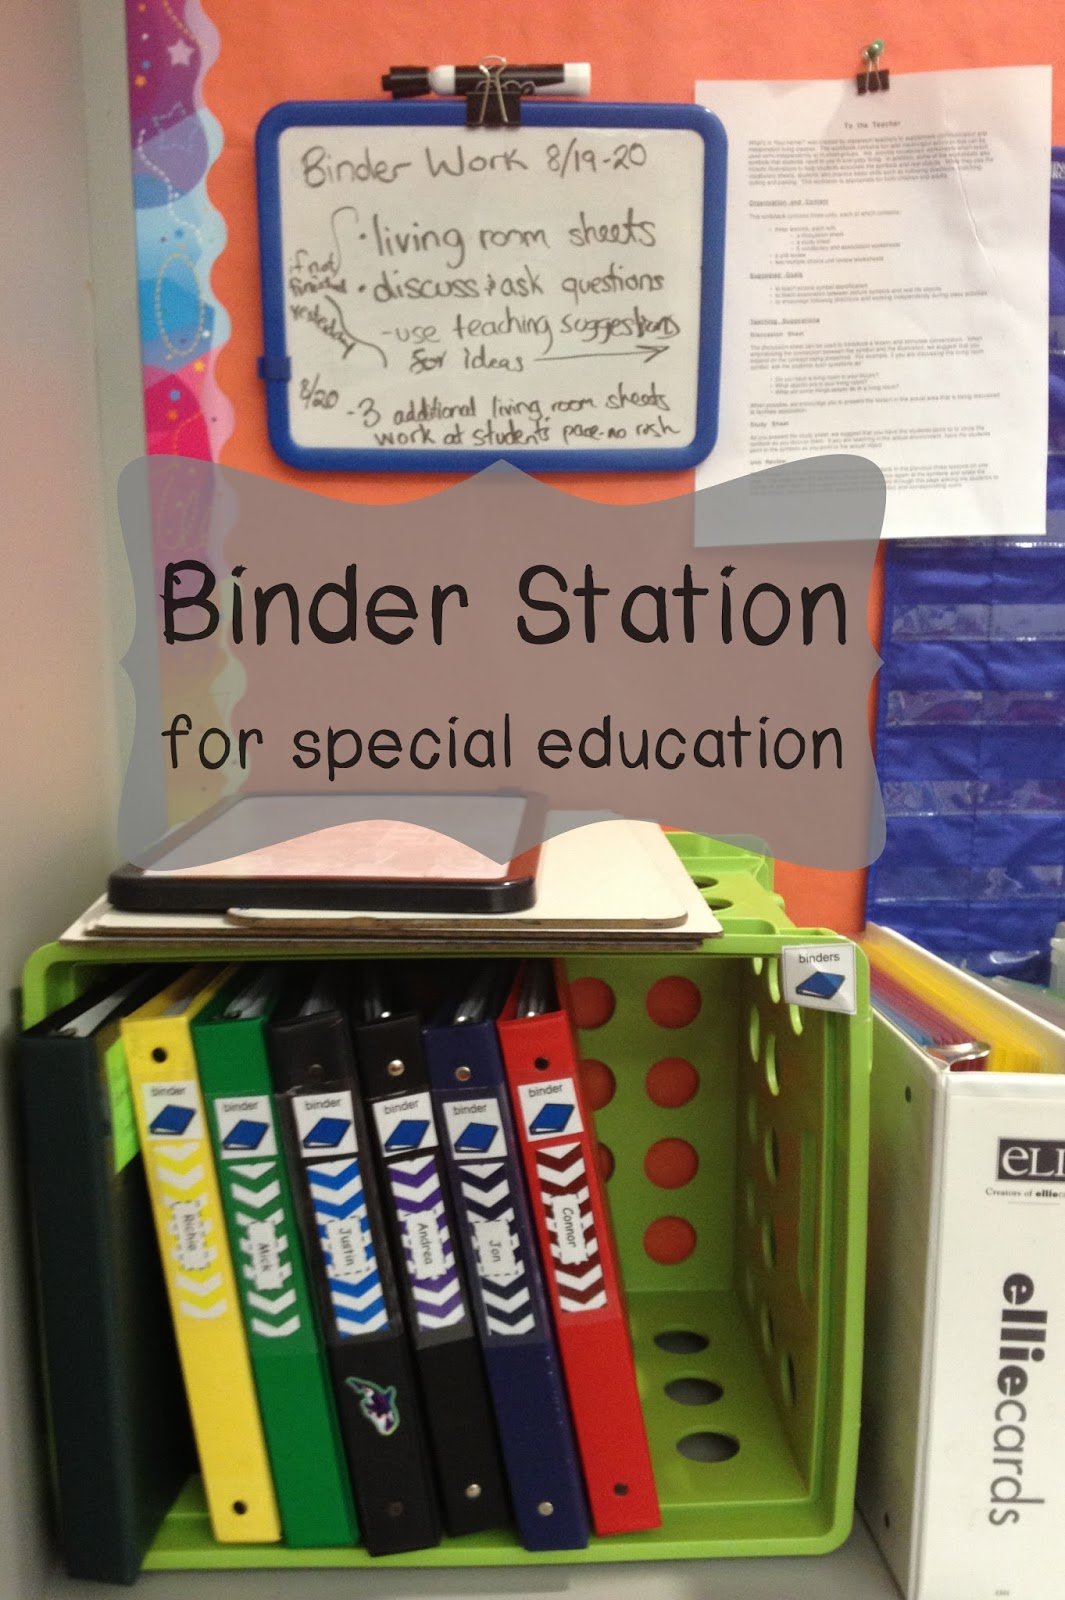 Binder Work Station For Special Education